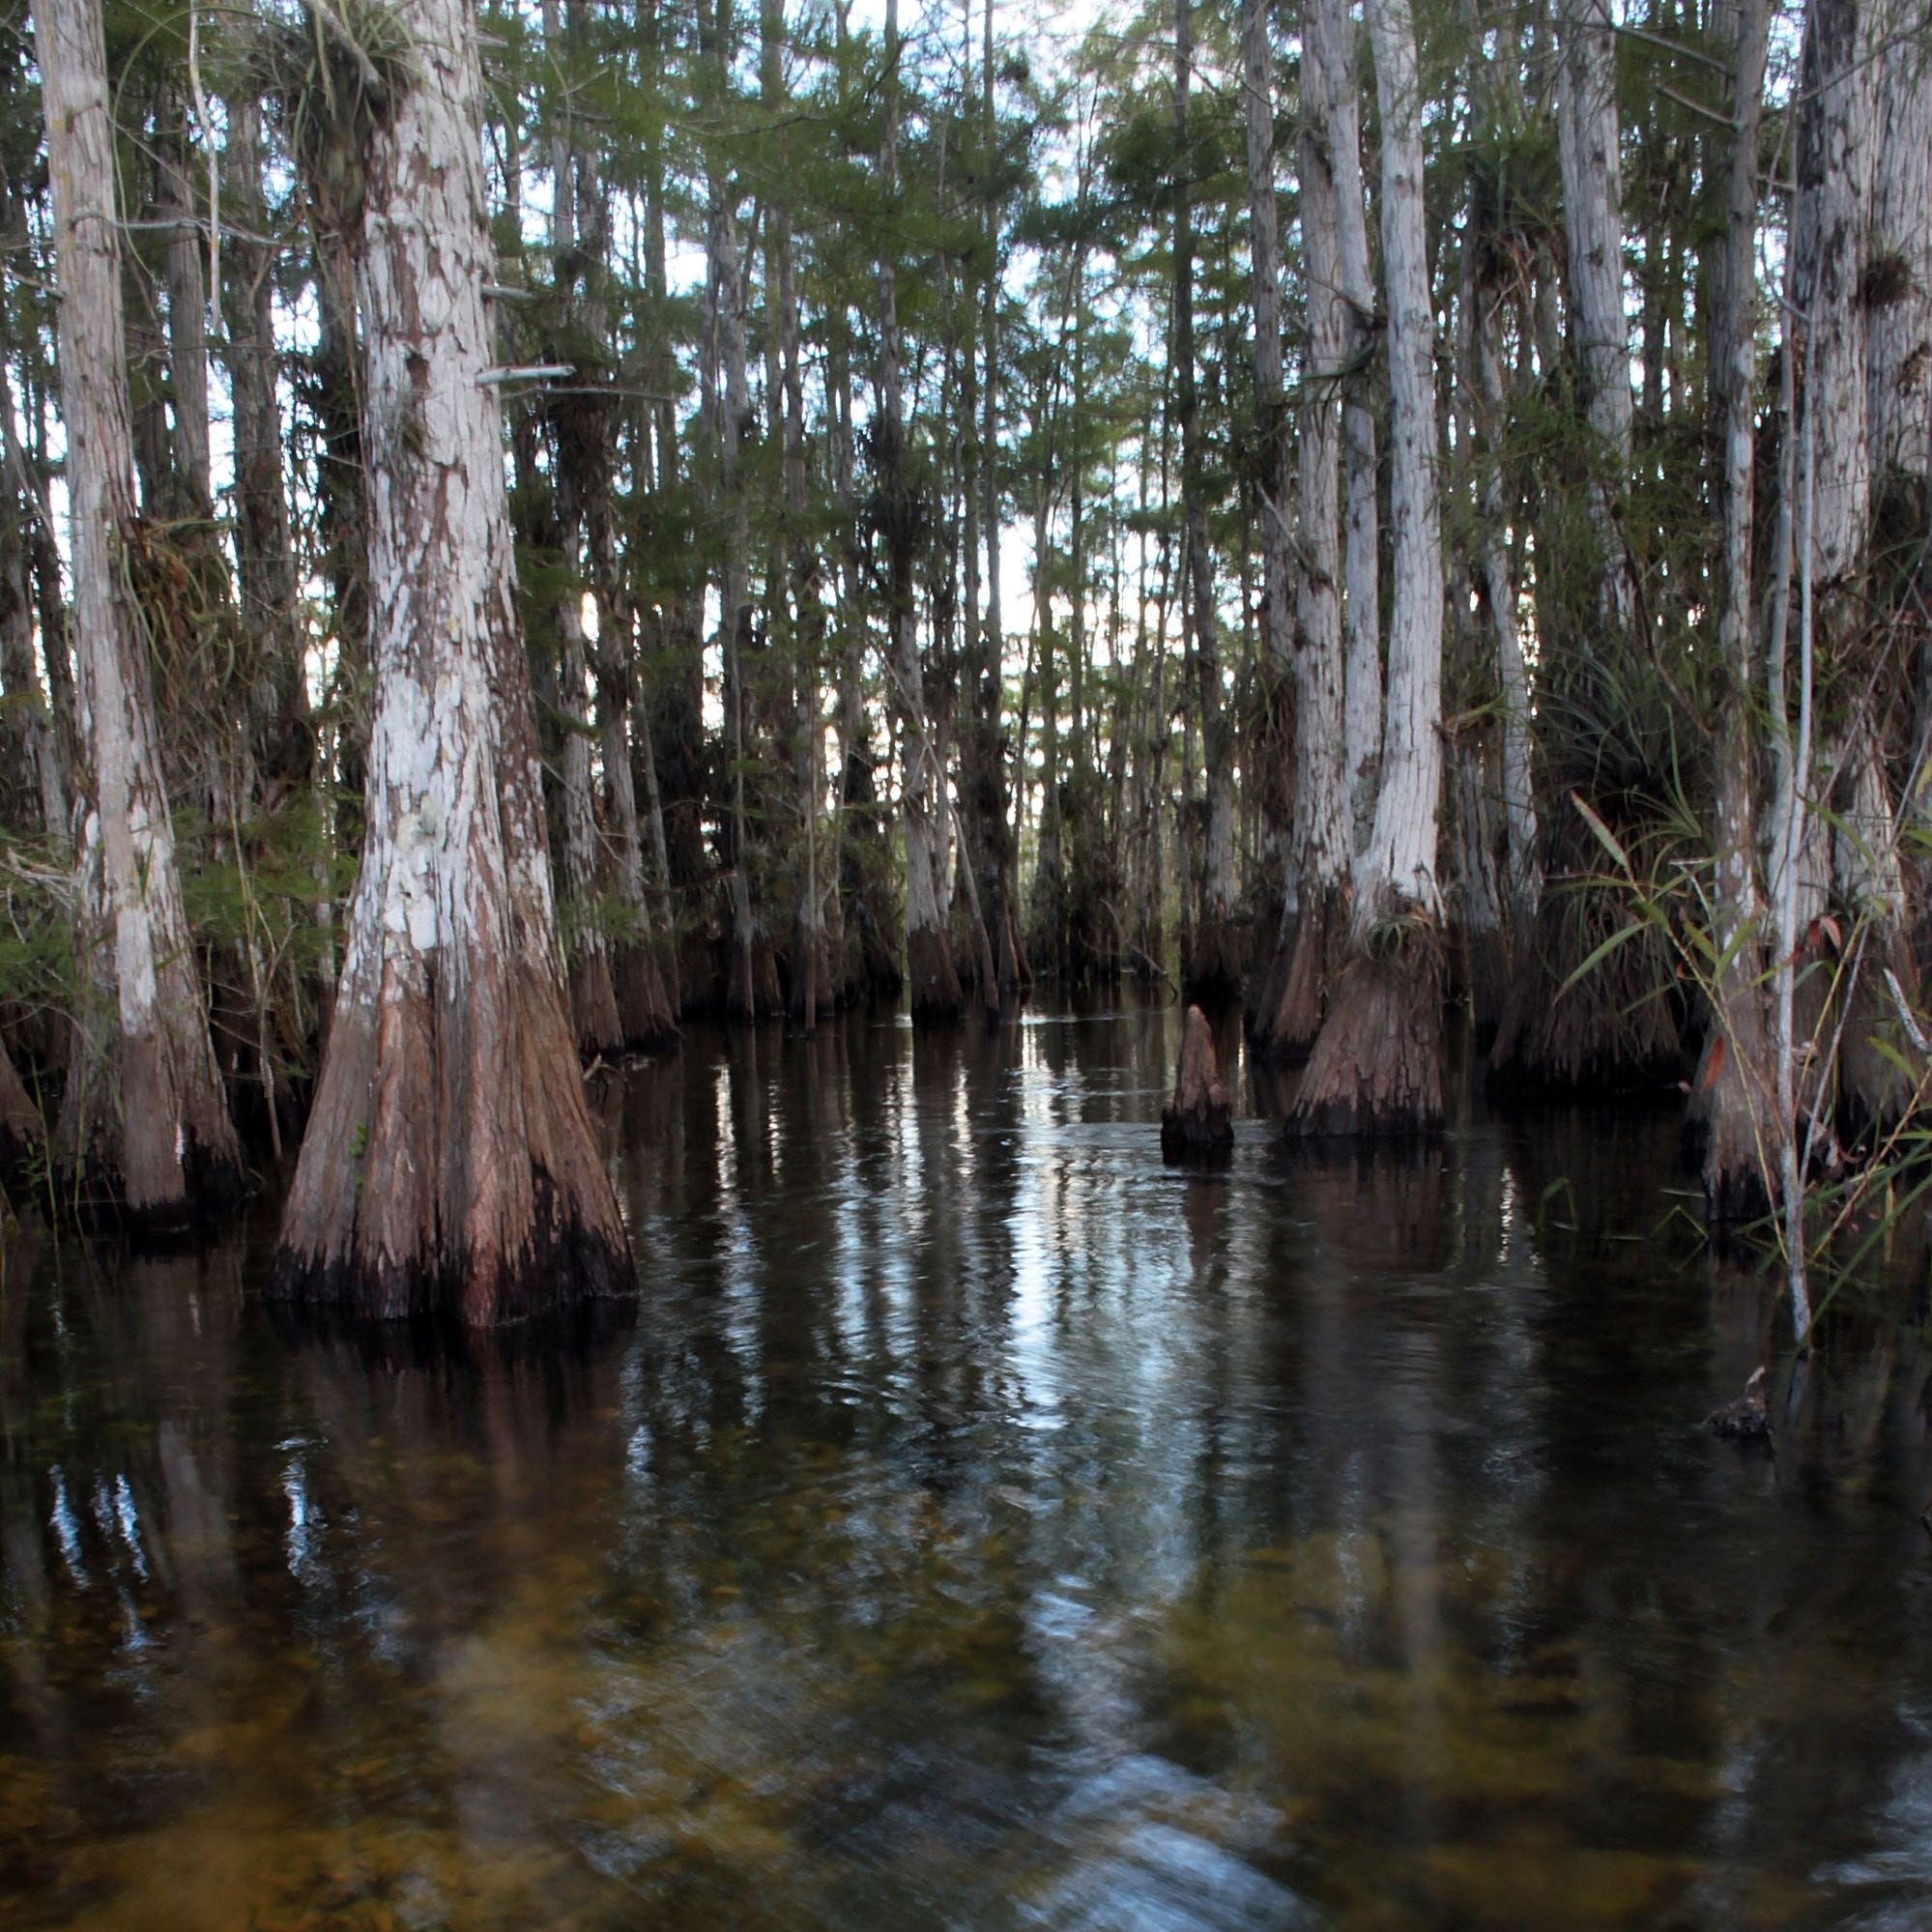 Appeals court clears way for landowner to drill exploratory oil well in Everglades